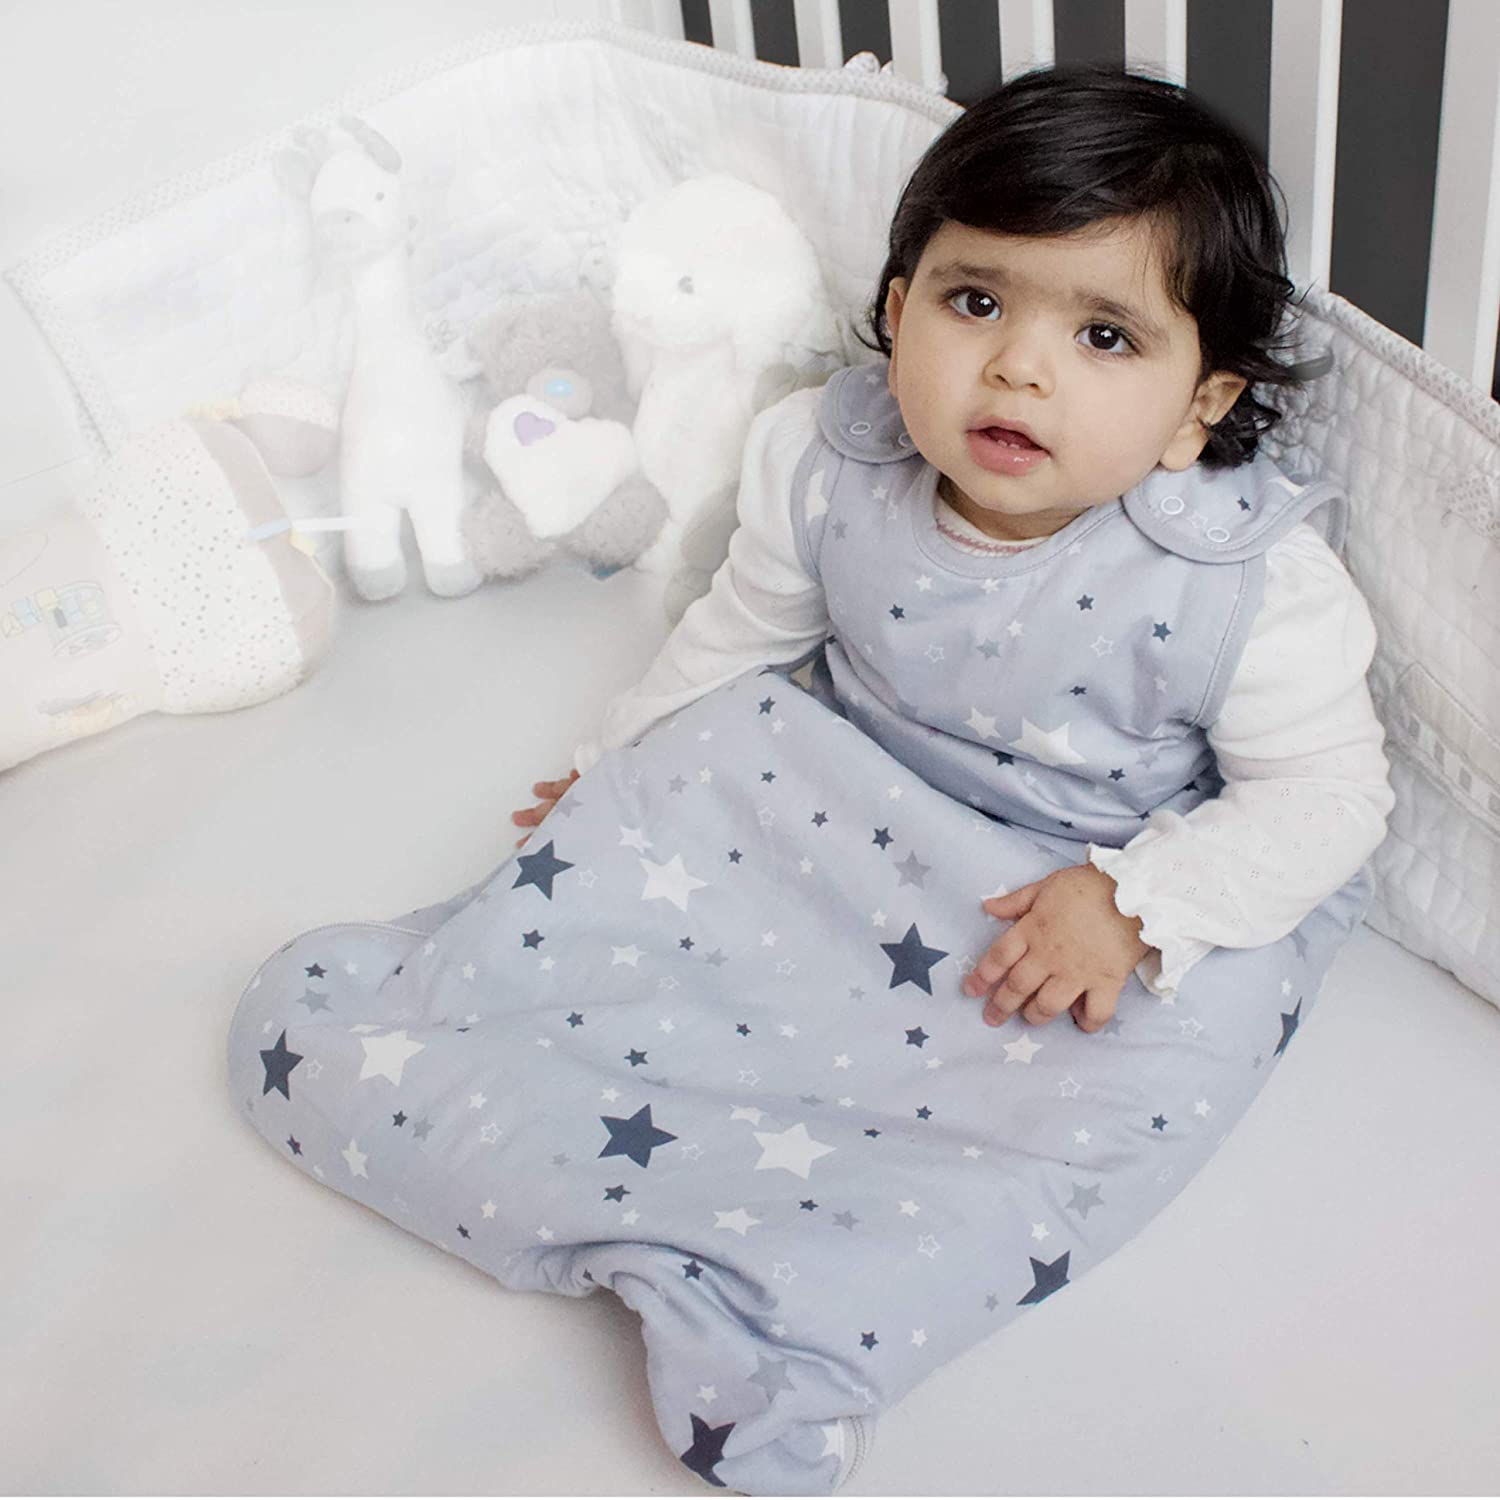 Grey Star 6-18 Months Baby Sleep Bag for Newborn Boy or Girl Be Babe Baby Sleeping Bag 2.5 tog Baby Blanket Swaddle Wrap Alternative for Cots Cribs and Travel Sizes 0-36m Two-Way Zip Opening